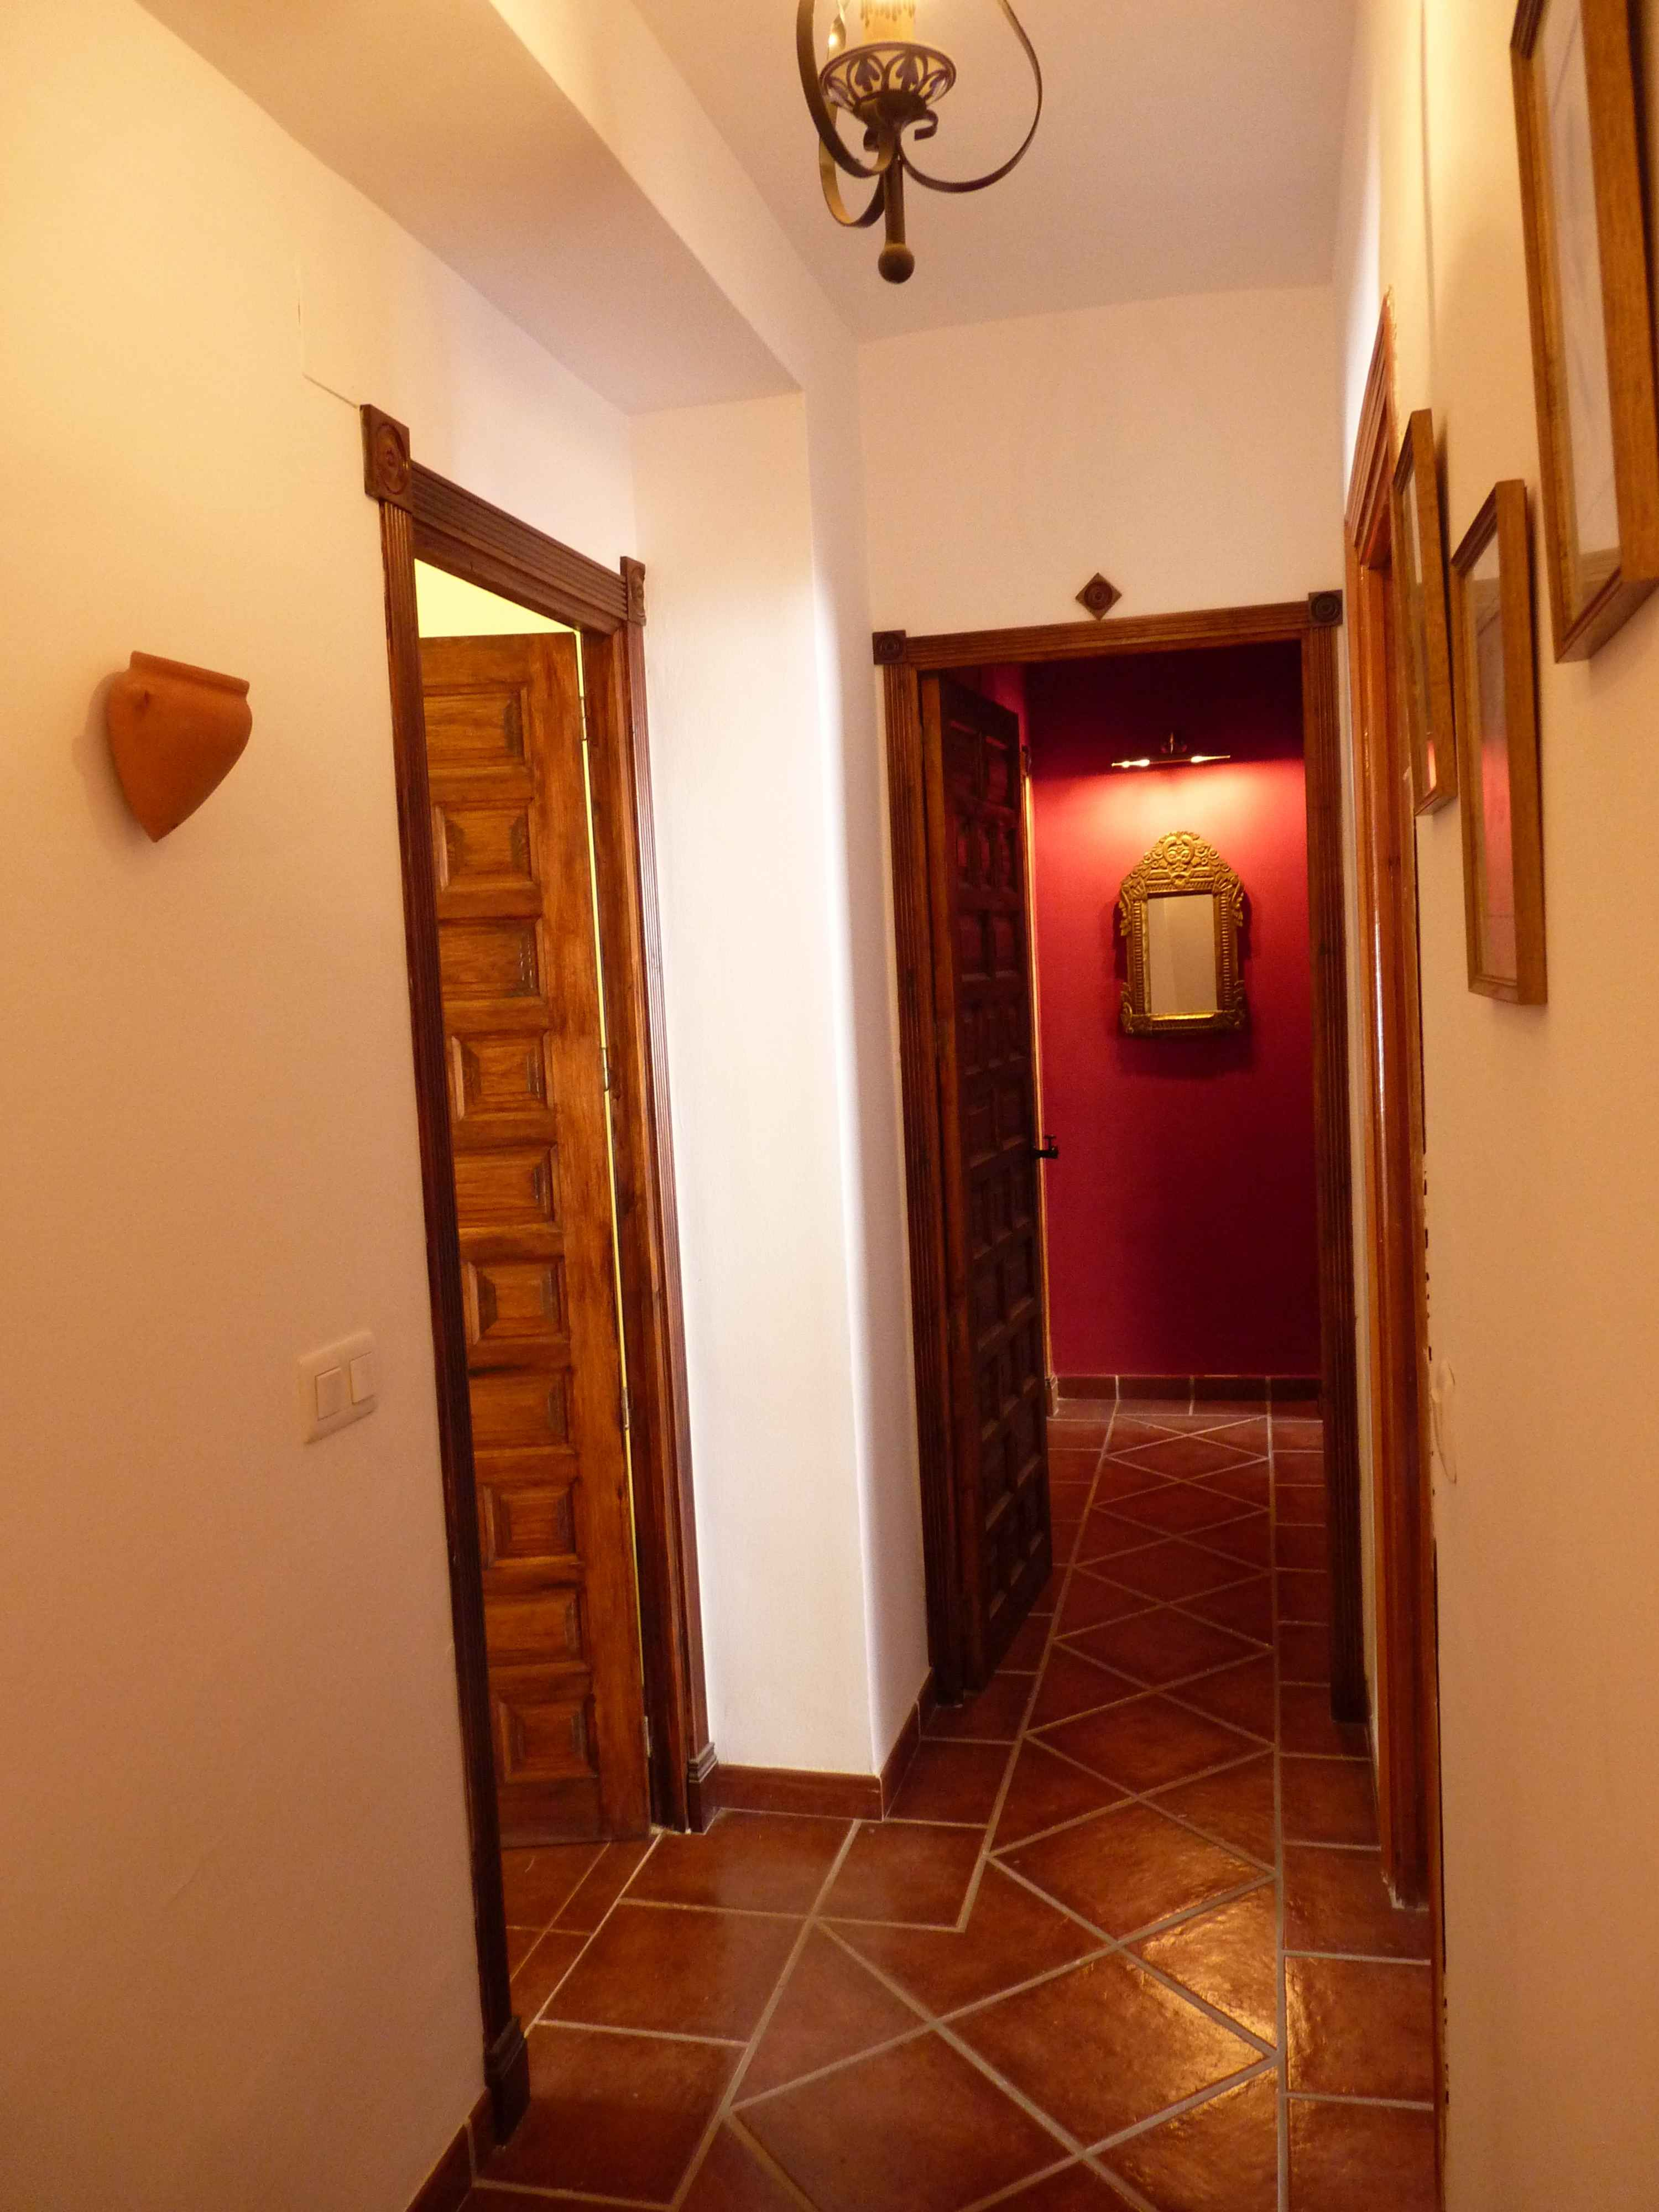 Wonderful Business Opportunity or Unique House To Live In. Antequera.properties/28/15.jpeg